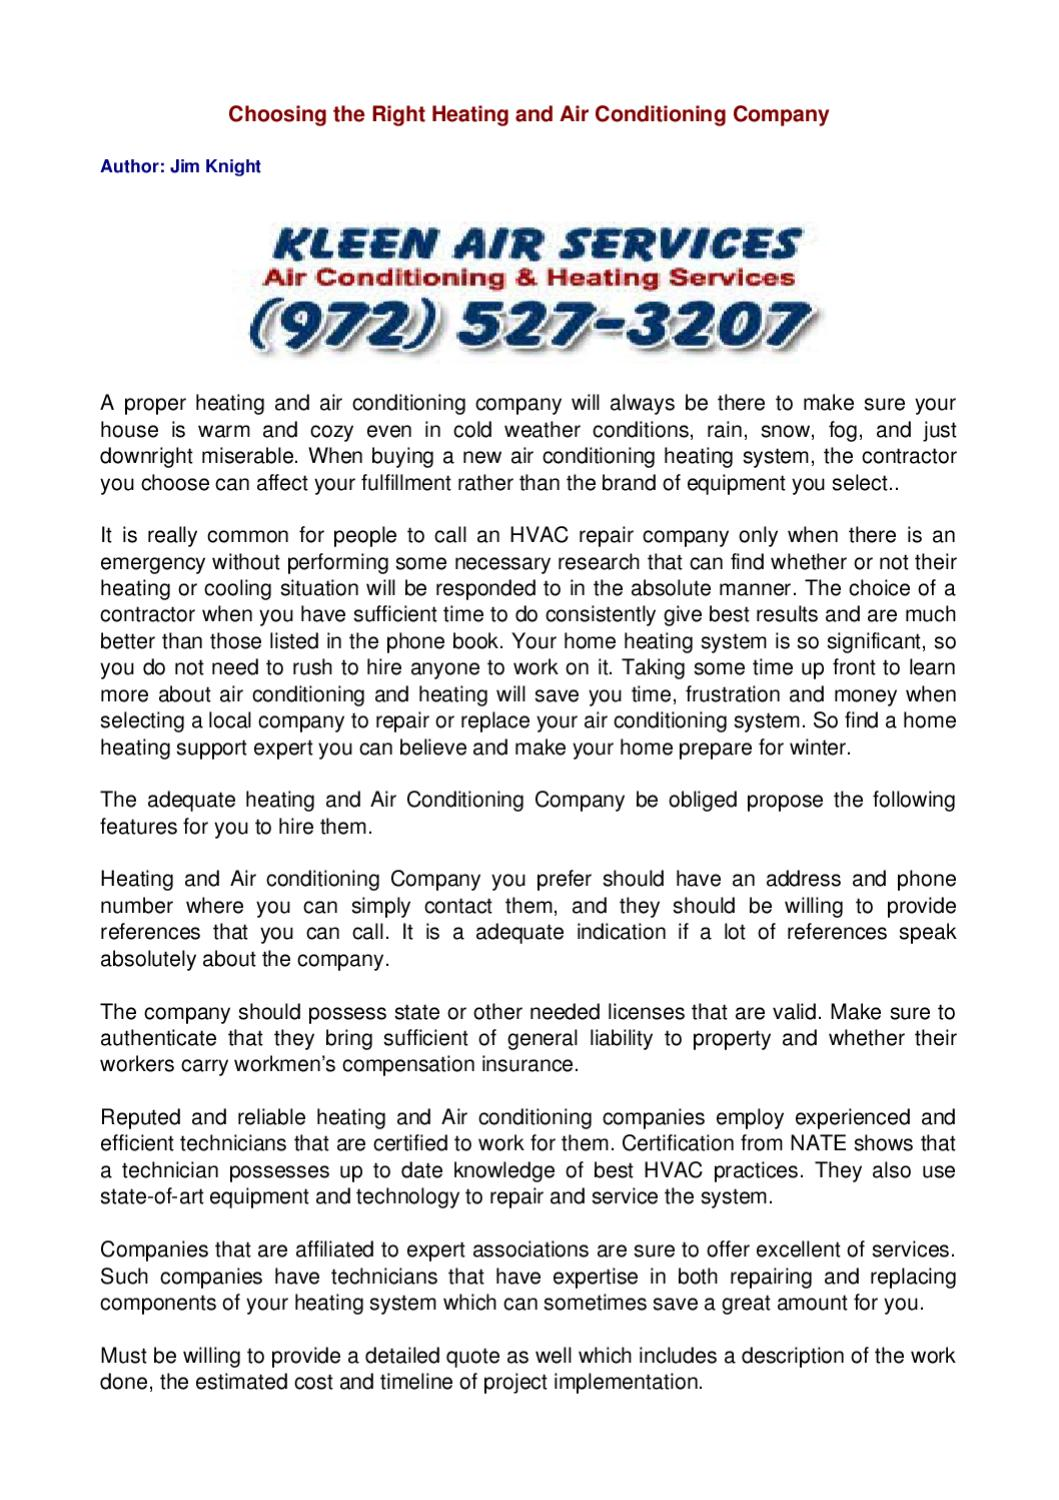 Choosing The Right Heating And Air Conditioning Company By Jim